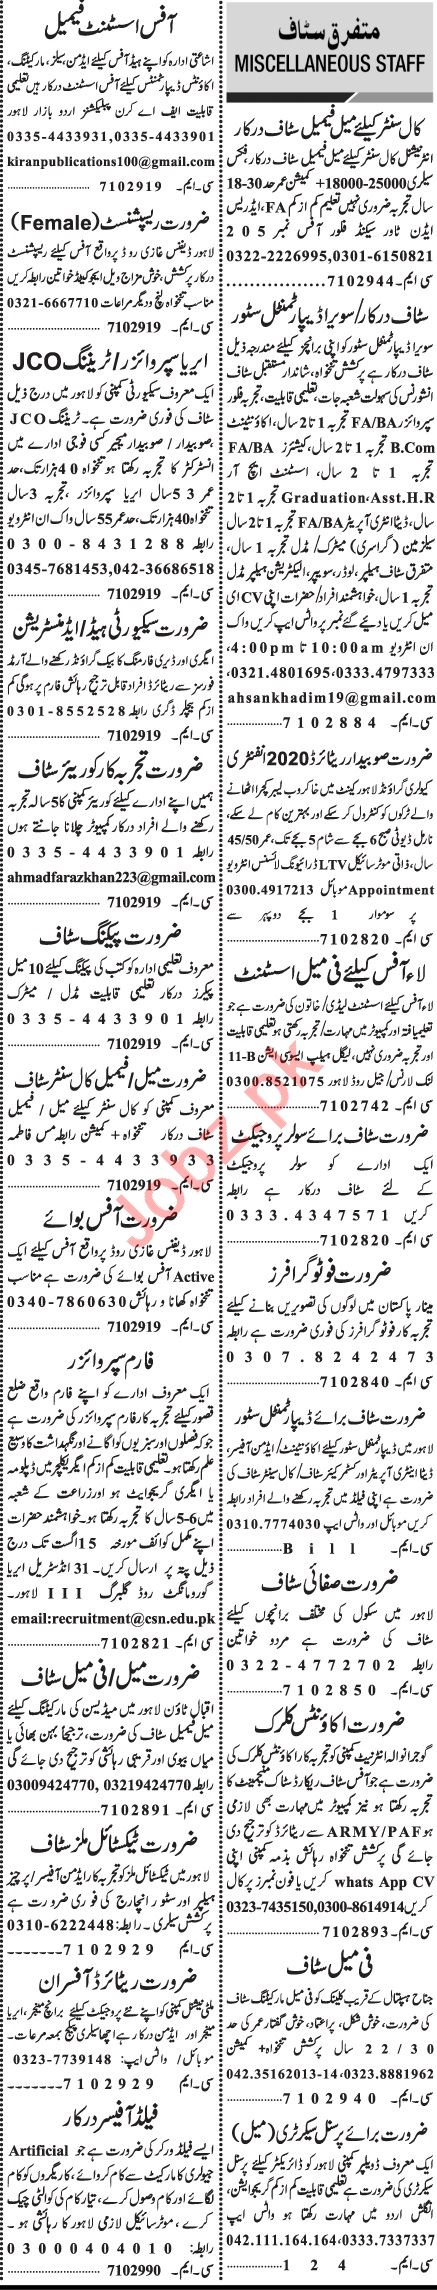 Jang Sunday Classified Ads 1st August 2021 General Staff